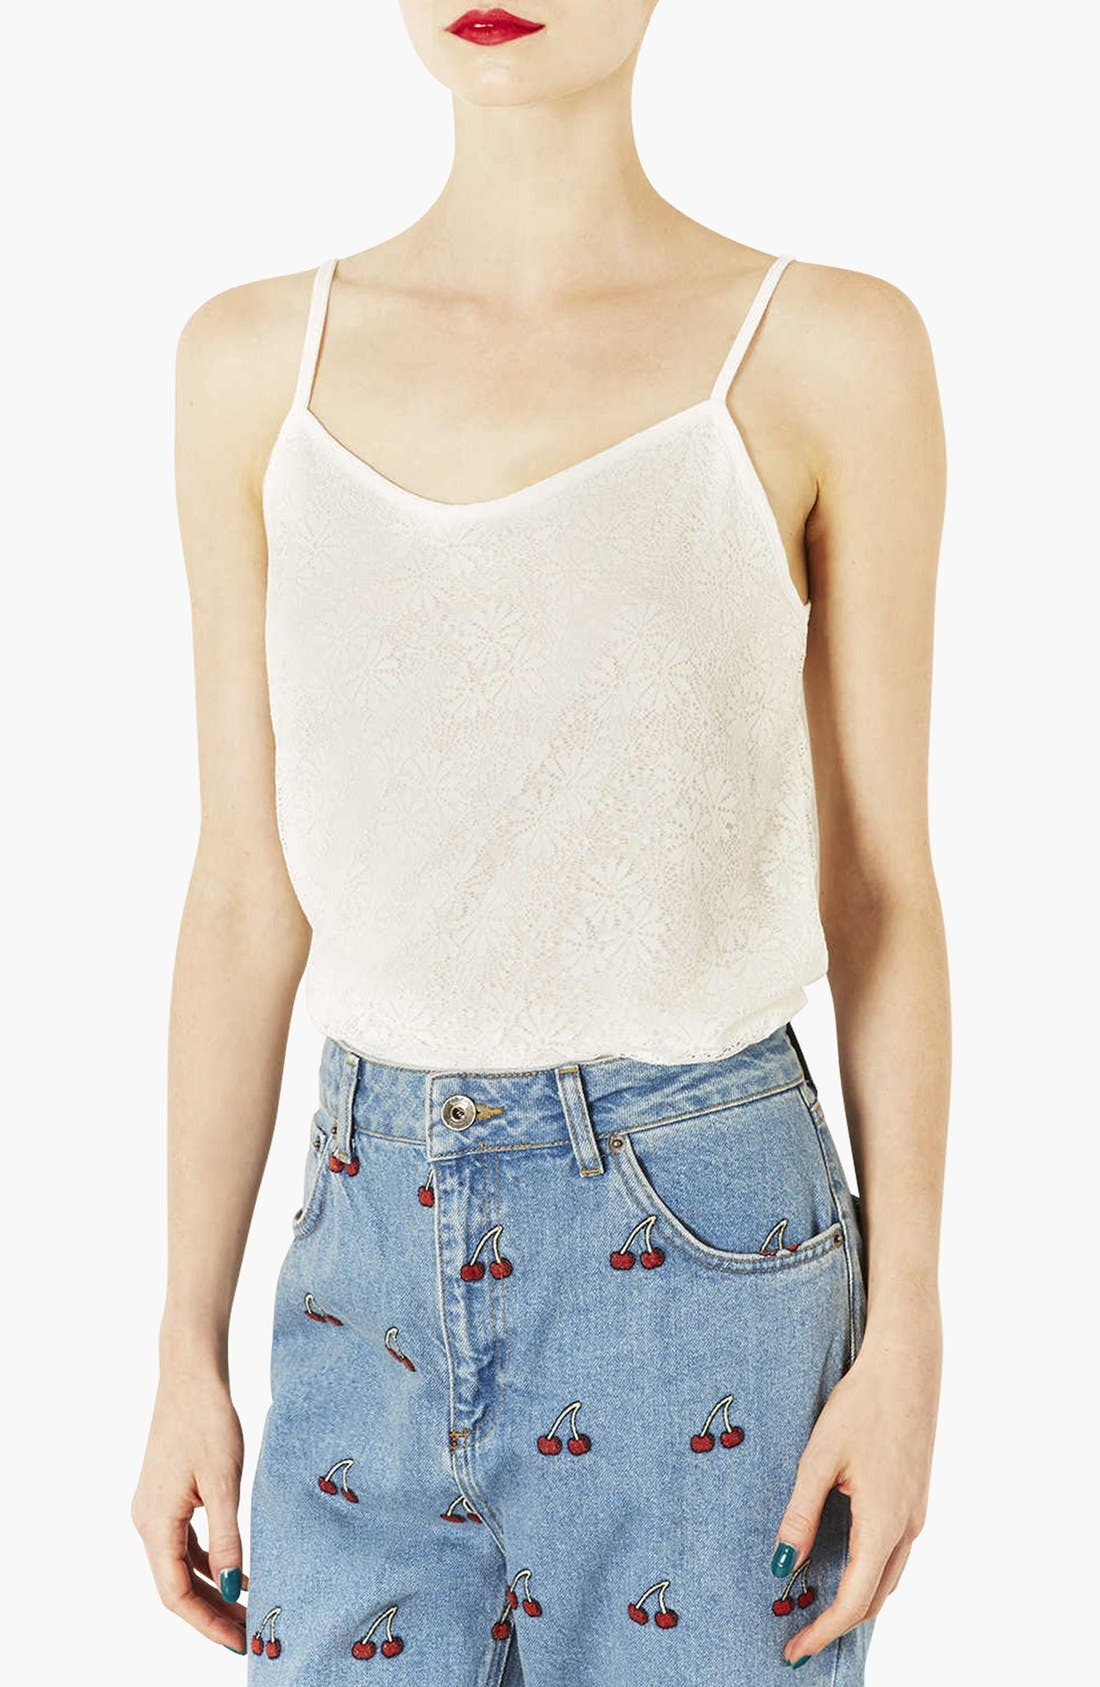 Alternate Image 1 Selected - Topshop Scallop Lace Camisole